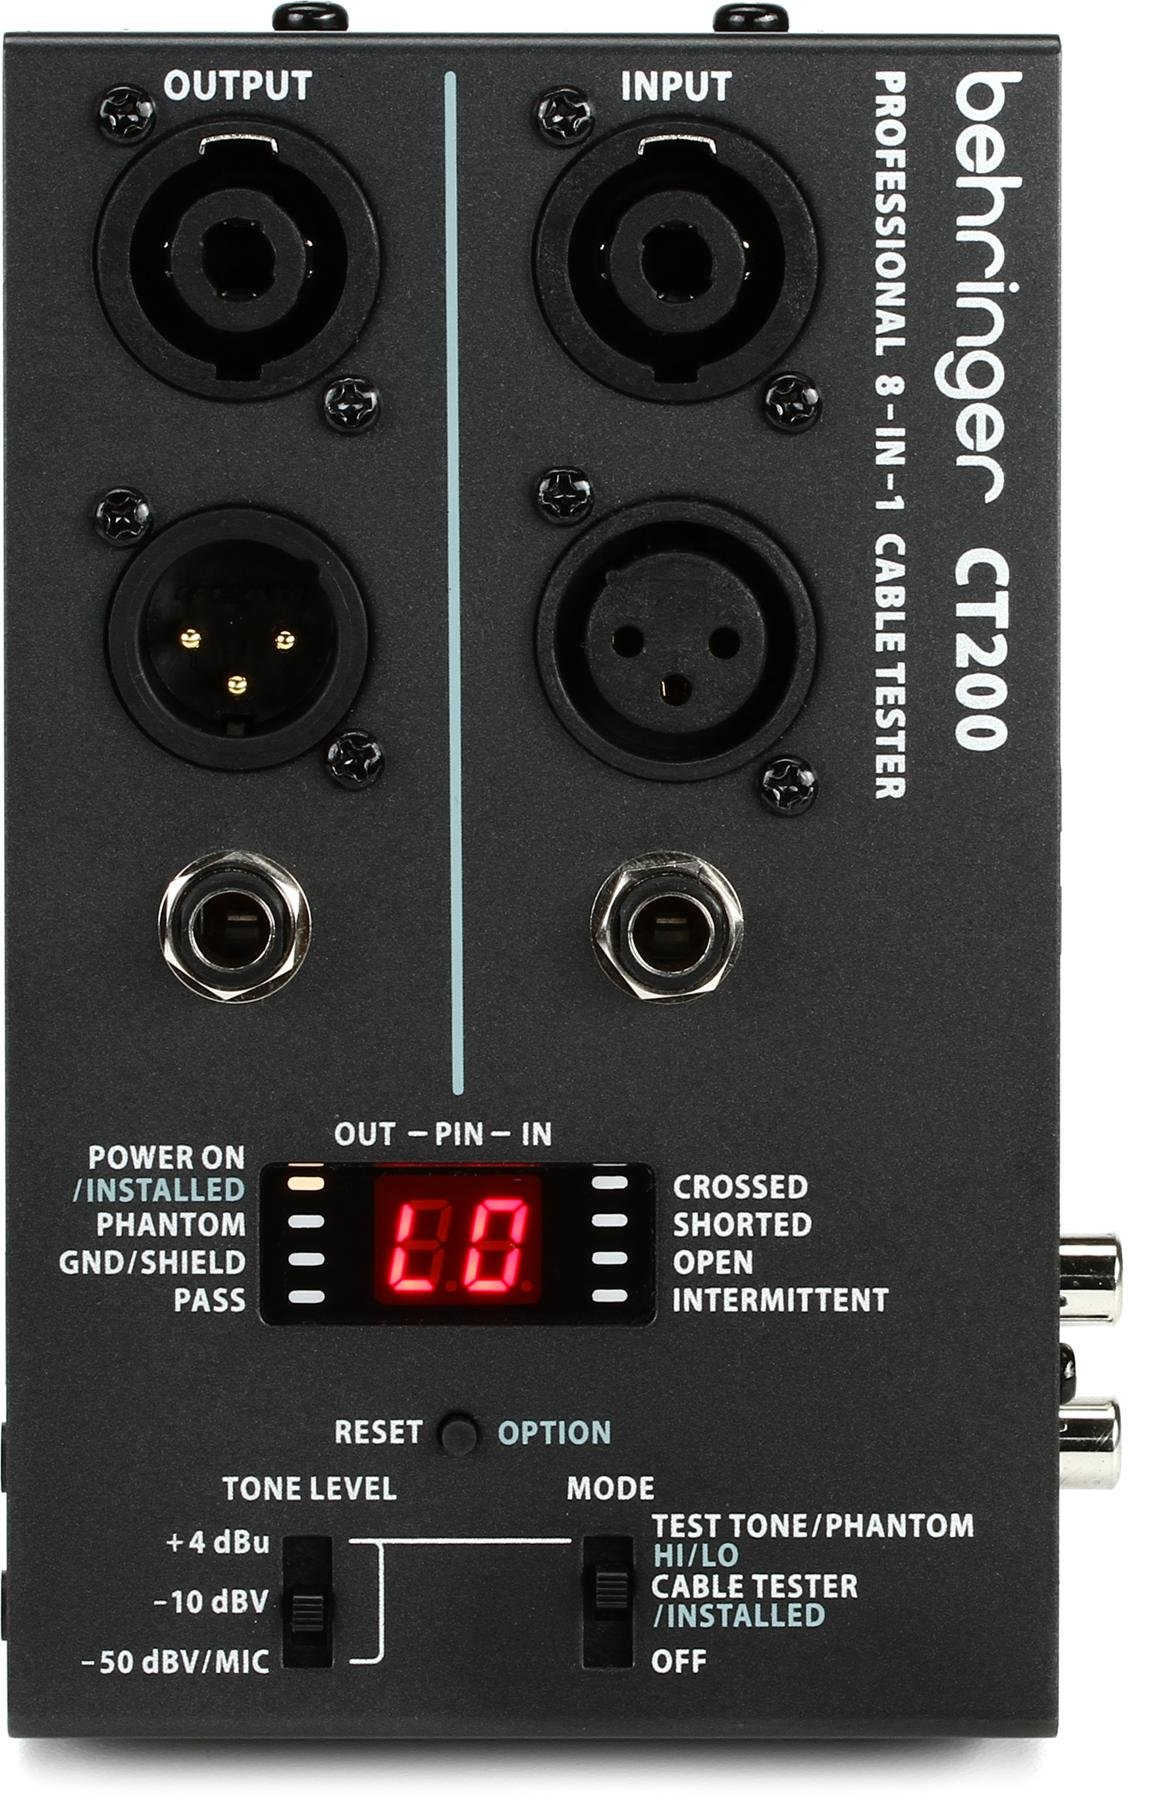 Behringer Ct200 Sweetwater Tool Aid Intermittent Short Finder And Circuit Image 1